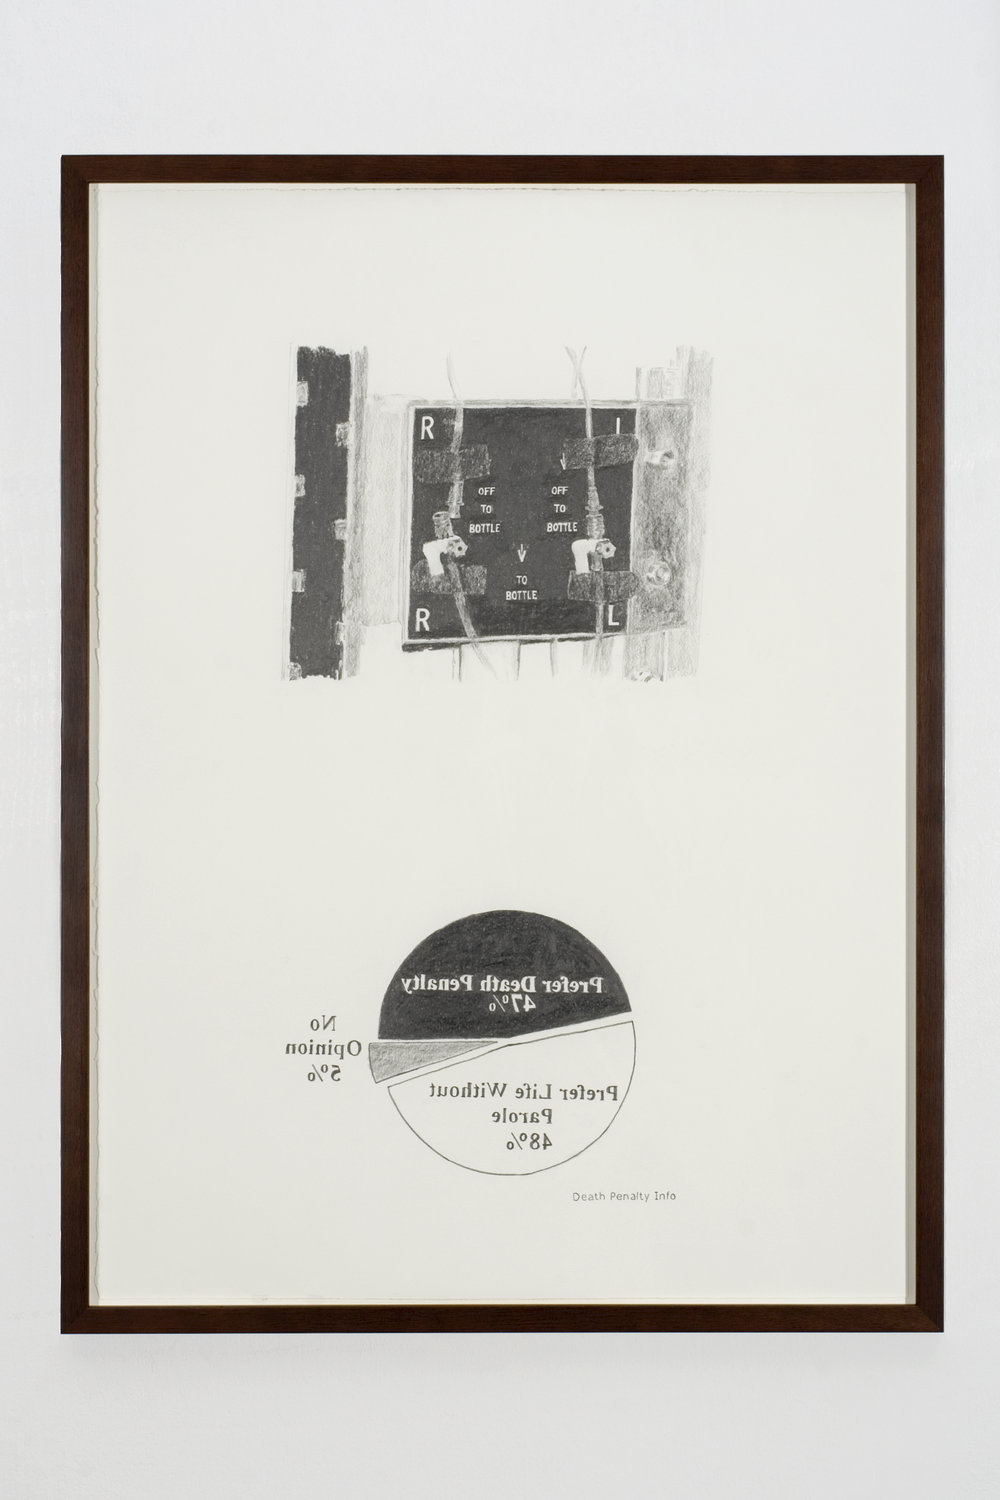 Support for Life, 2008 graphite on paper 81 x 61 cm - 32 x 24 inches (framed)